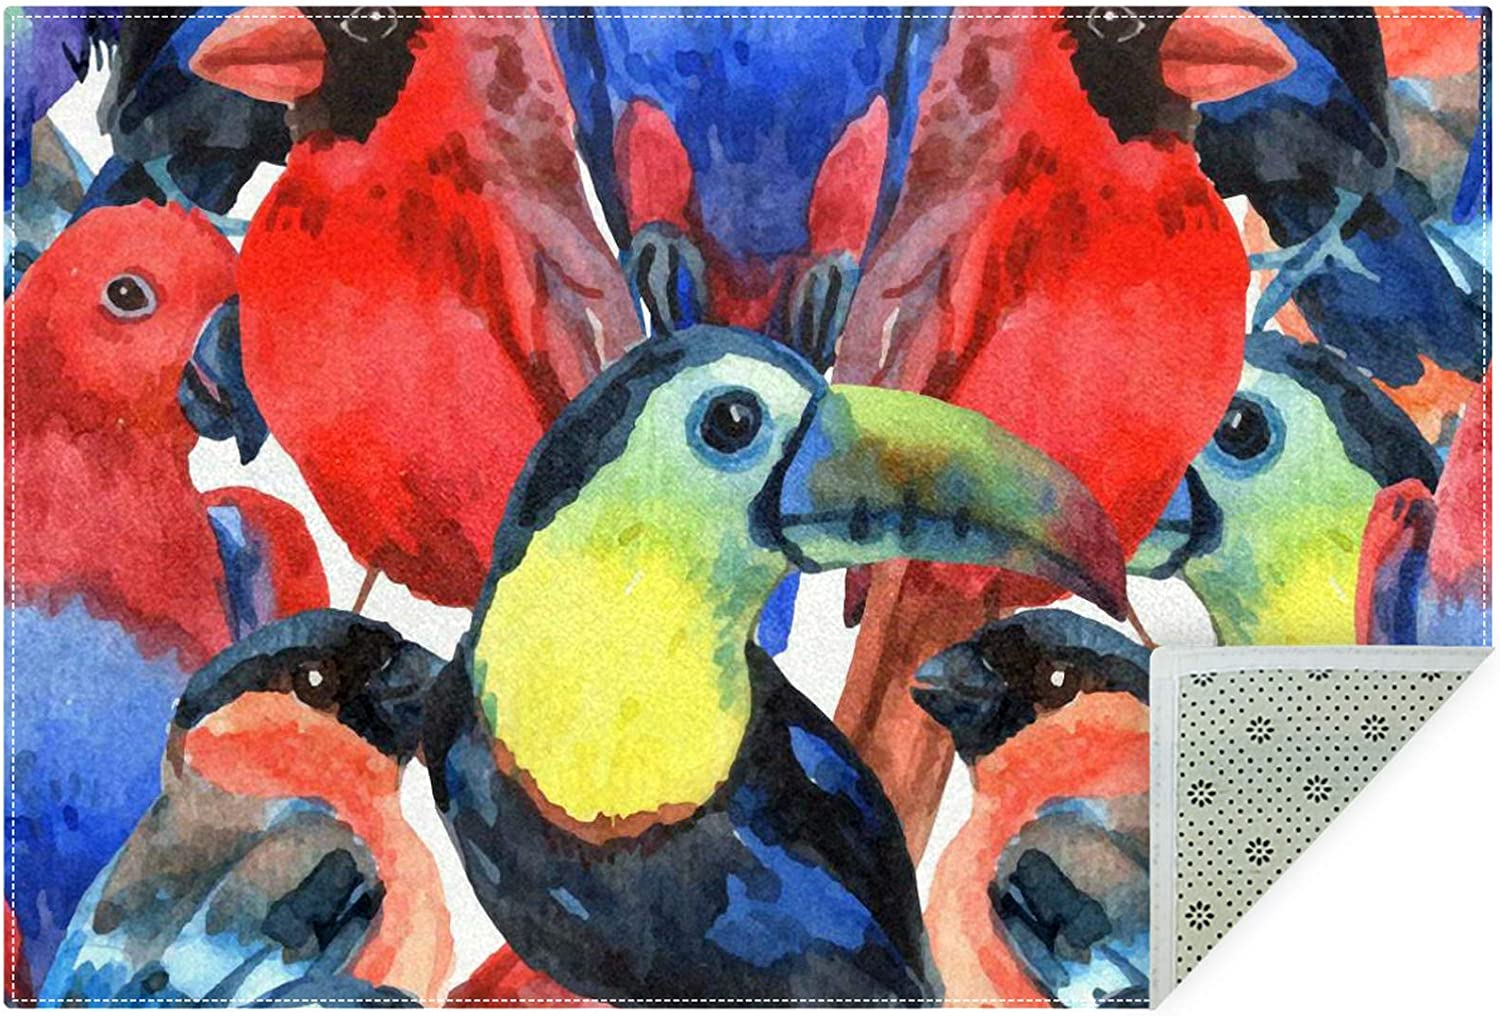 depot Unicey No-Shedding Non-Slip Machine Colo Tropical Washable Birds In a popularity